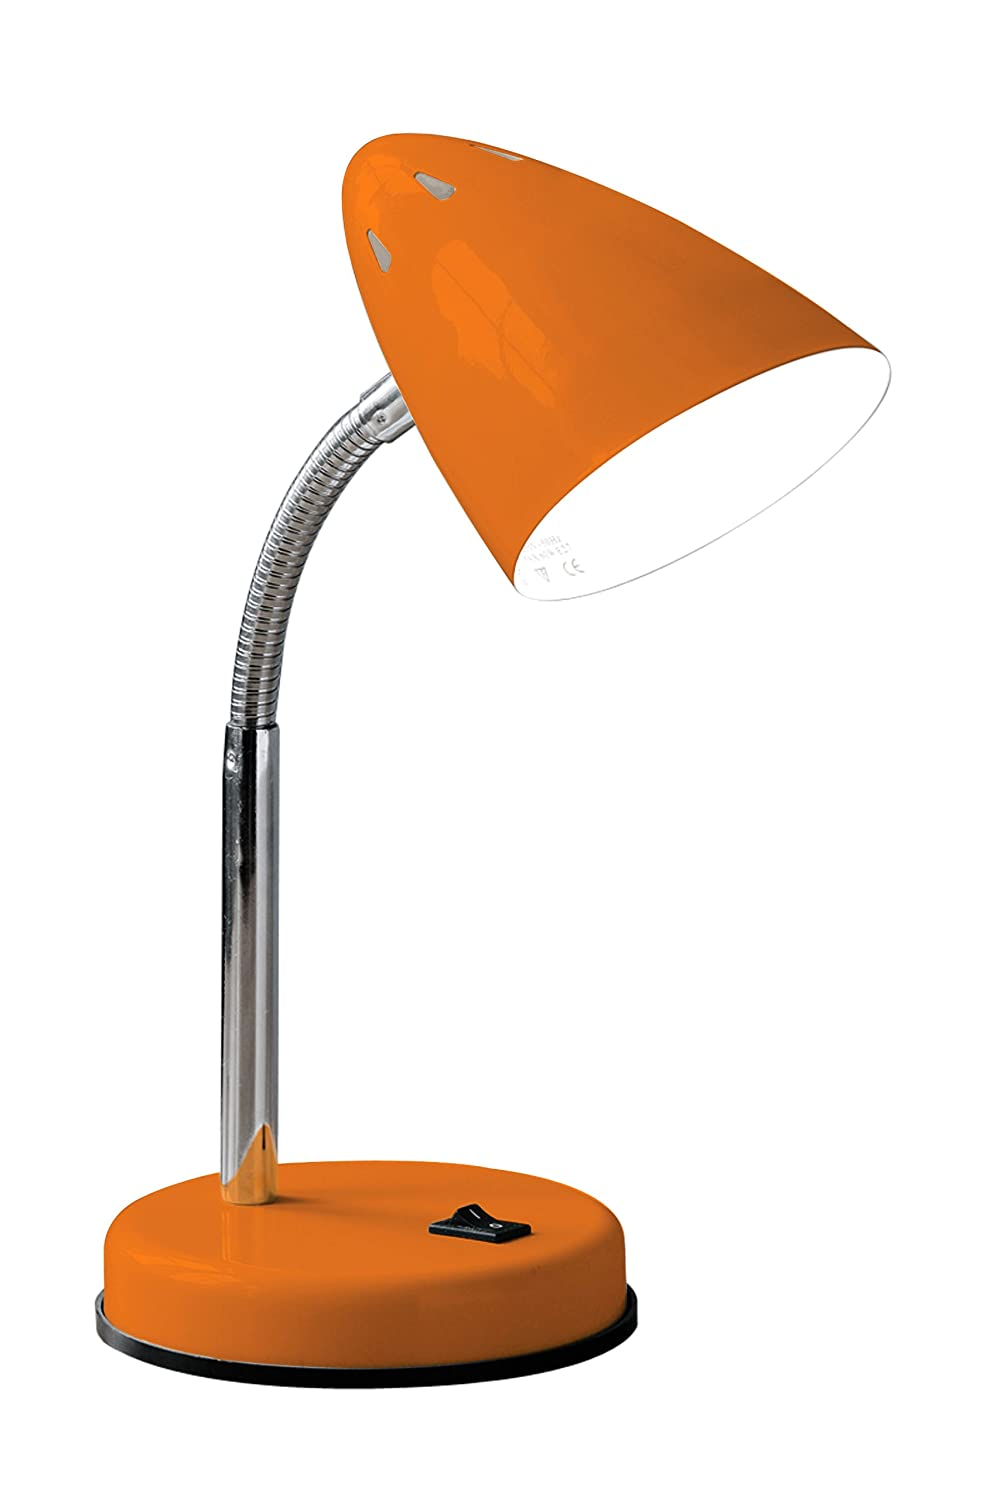 Premier Housewares Flexi Desk Lamp - Orange Gloss: Amazon.co.uk ...